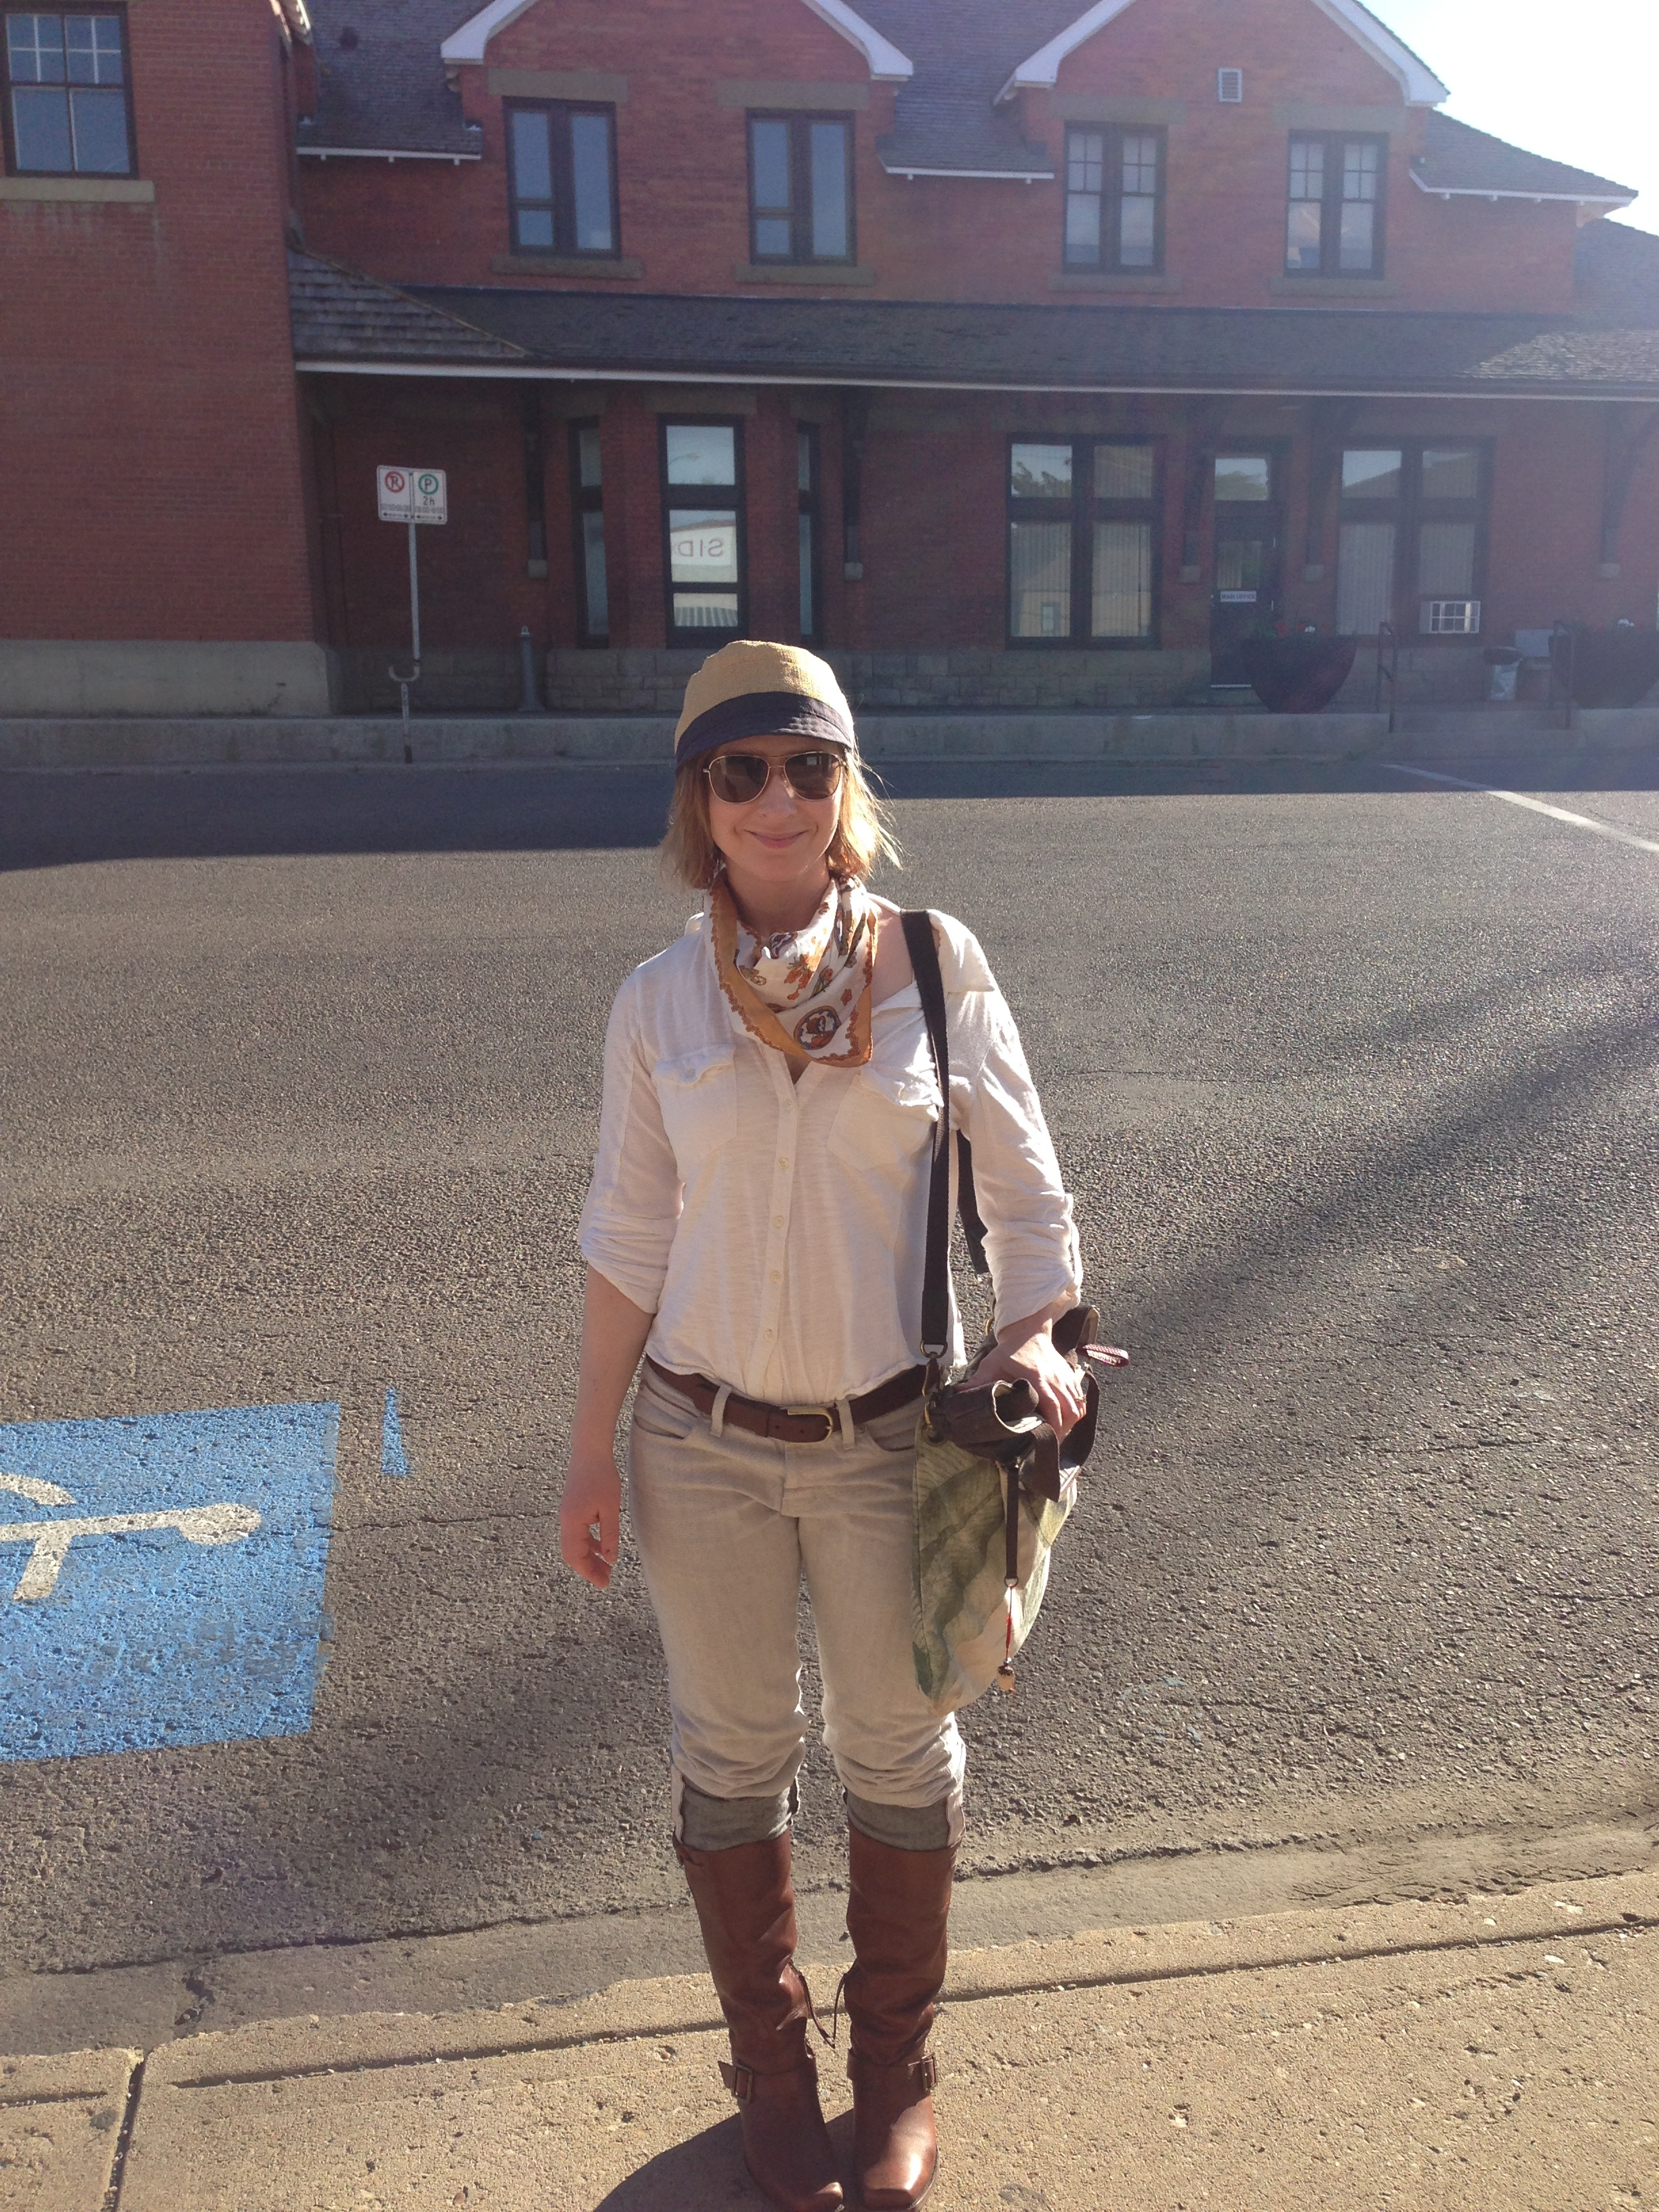 After Nelson, Medicine Hat, Alberta! With more thrift store finds (silk scarf). (Photo Alex Renwick)